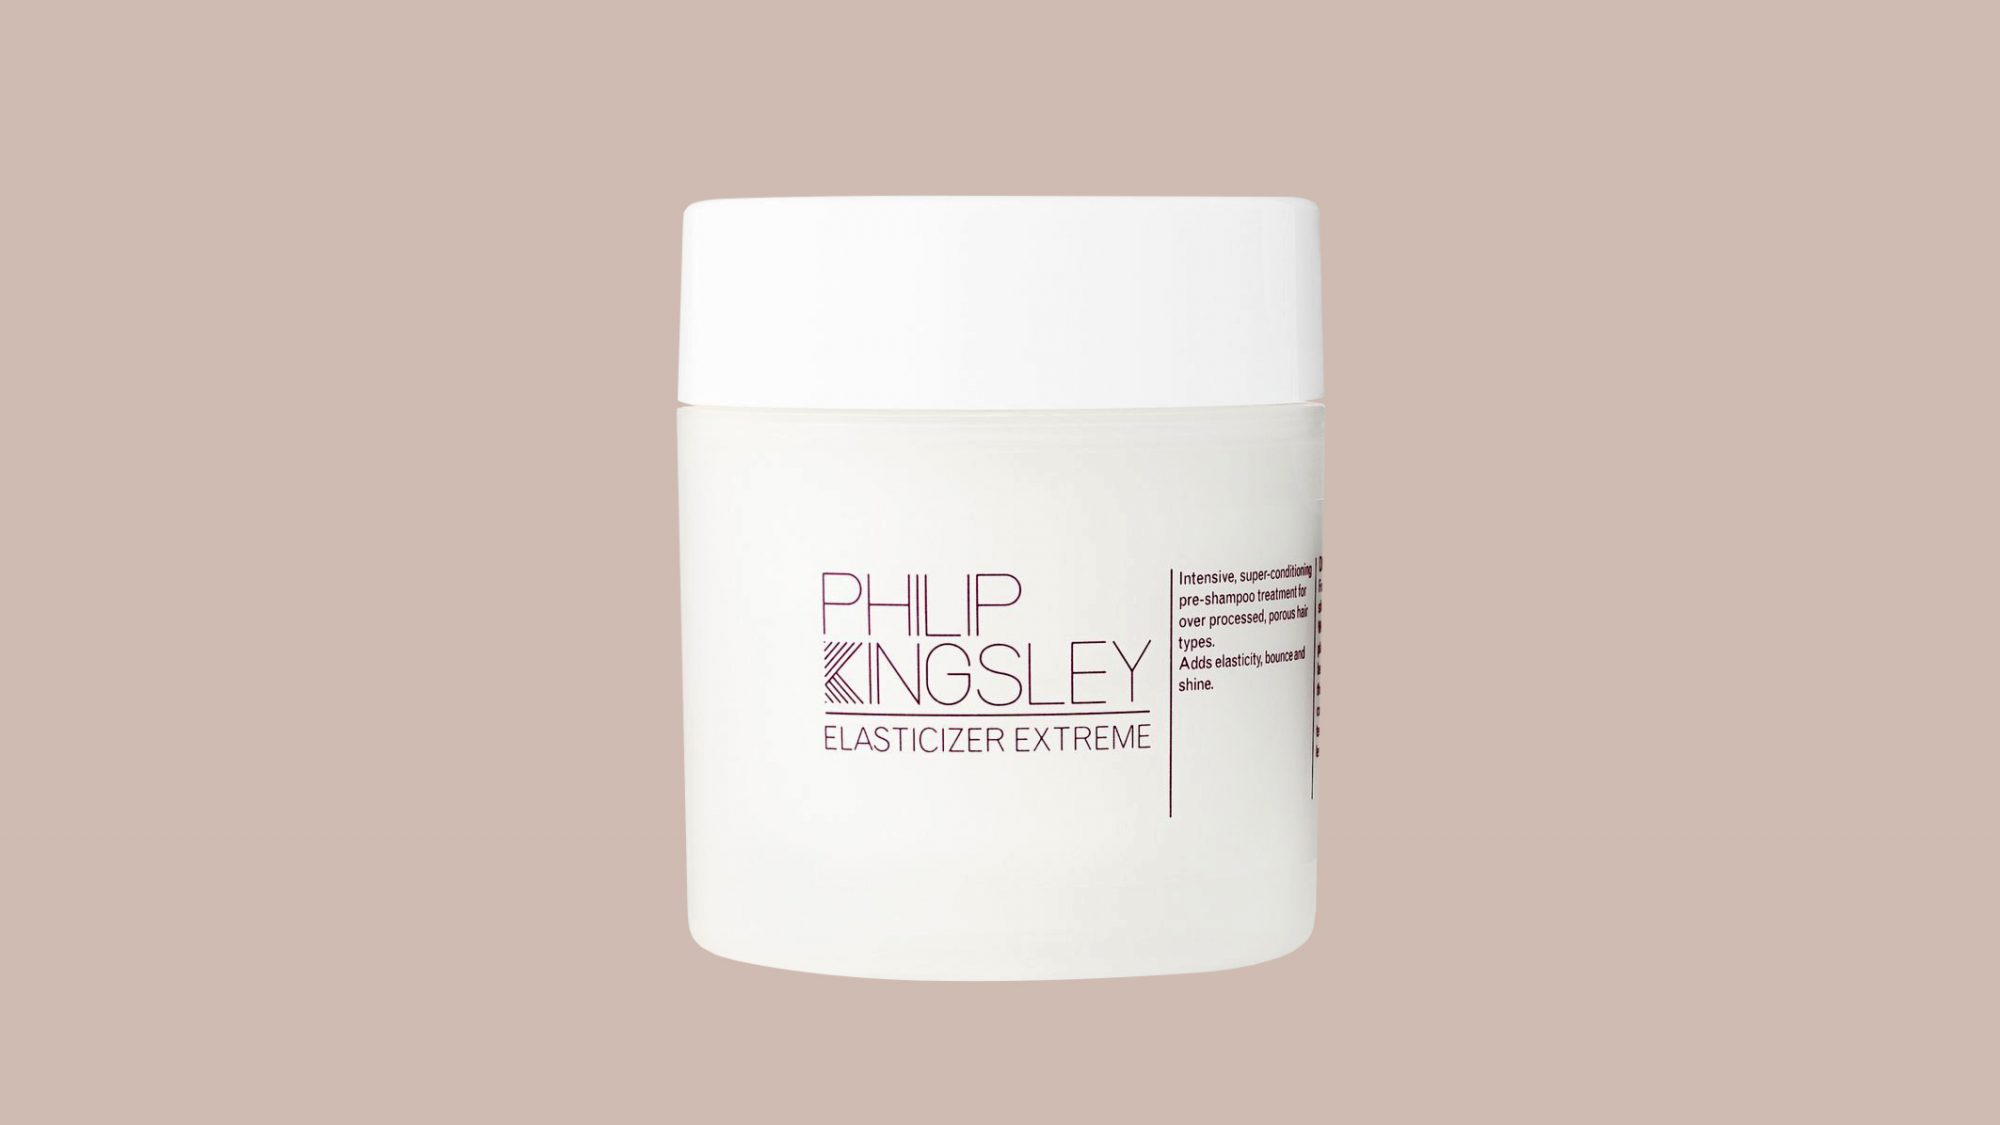 Philip Kingsley Elasticizer Extreme Hair Mask